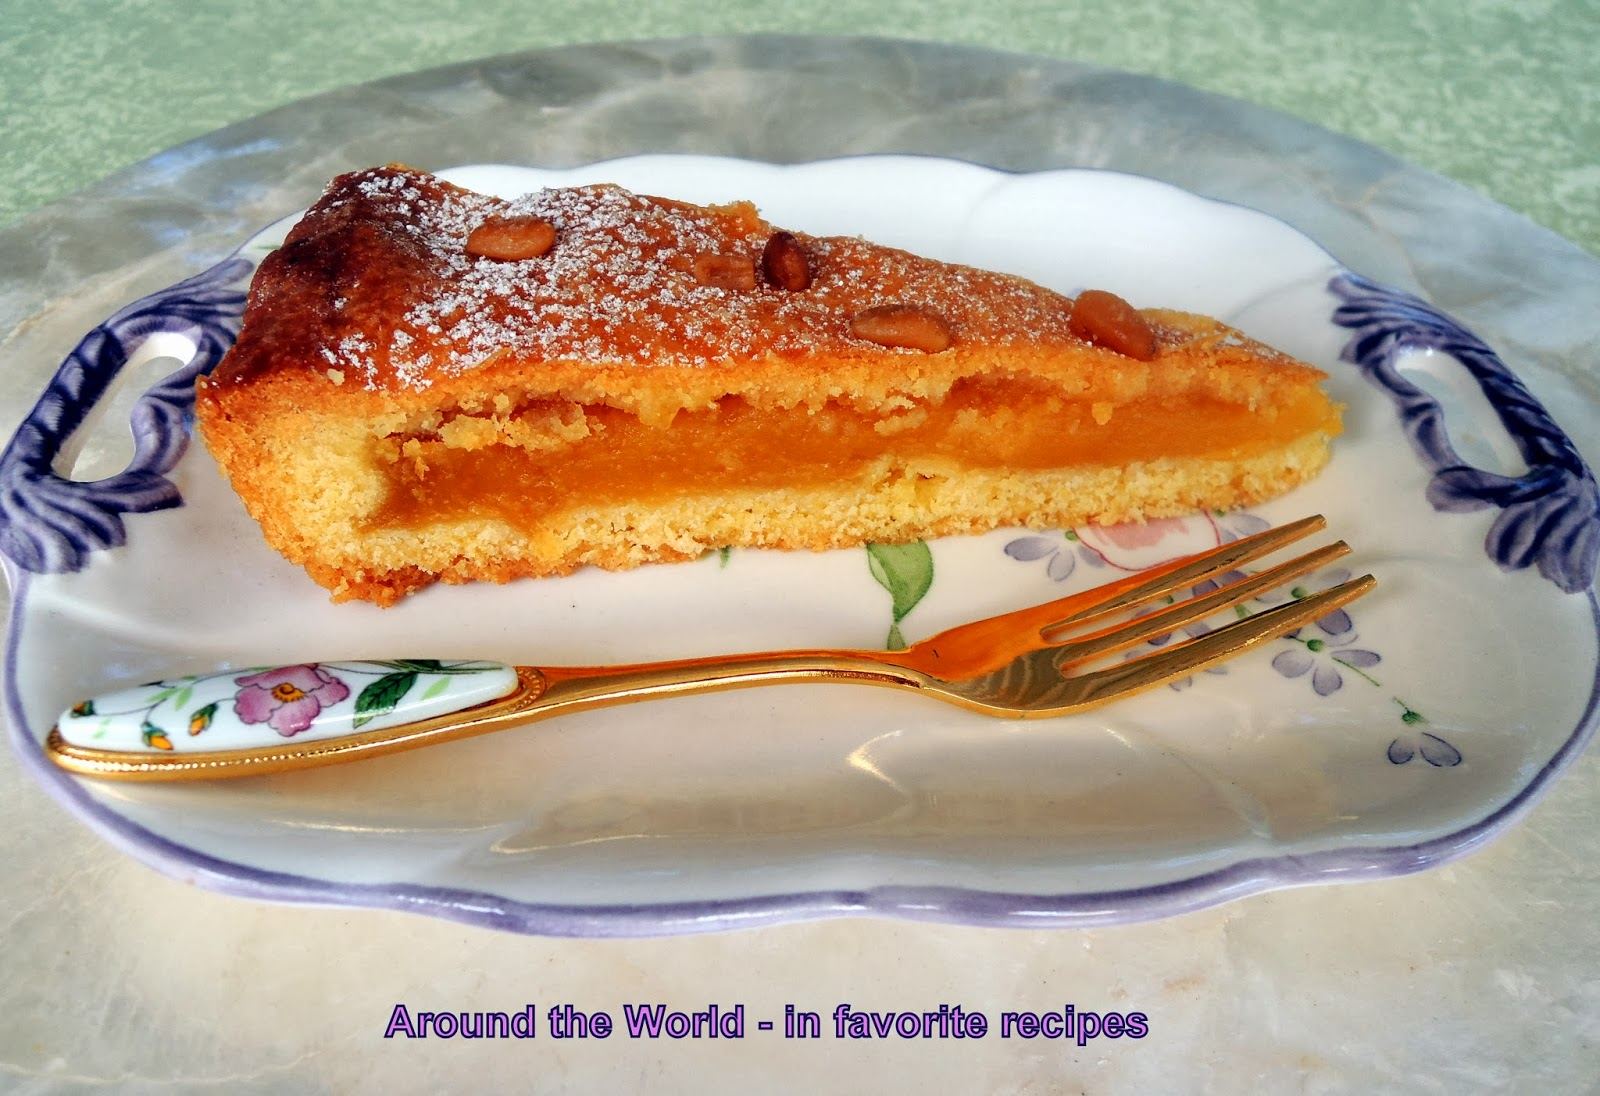 Around the World - in favorite recipes: Lemon and Pine Nuts Tart